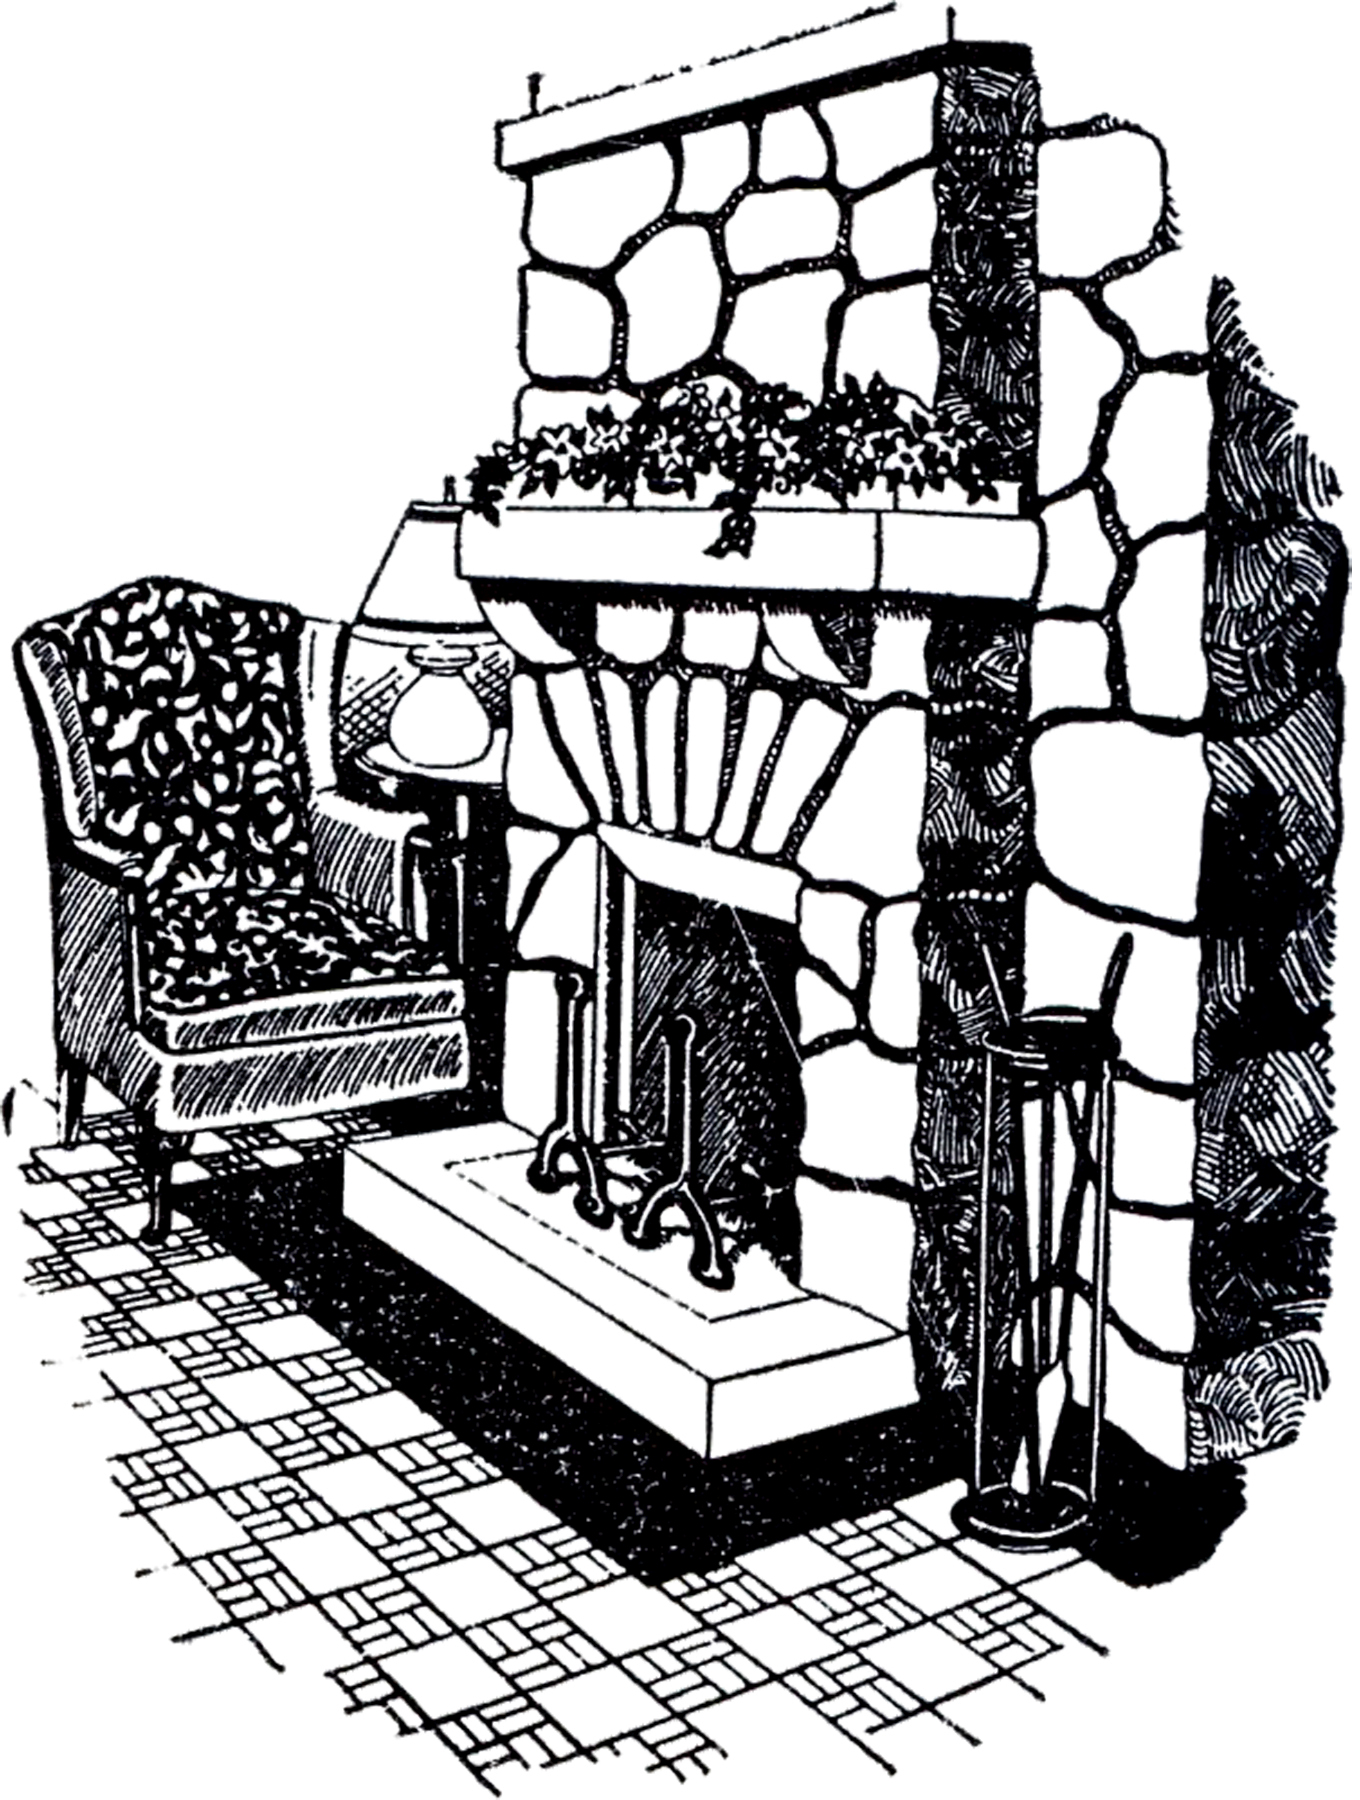 Vintage stone fireplace image the graphics fairy - Black and white fireplace ...